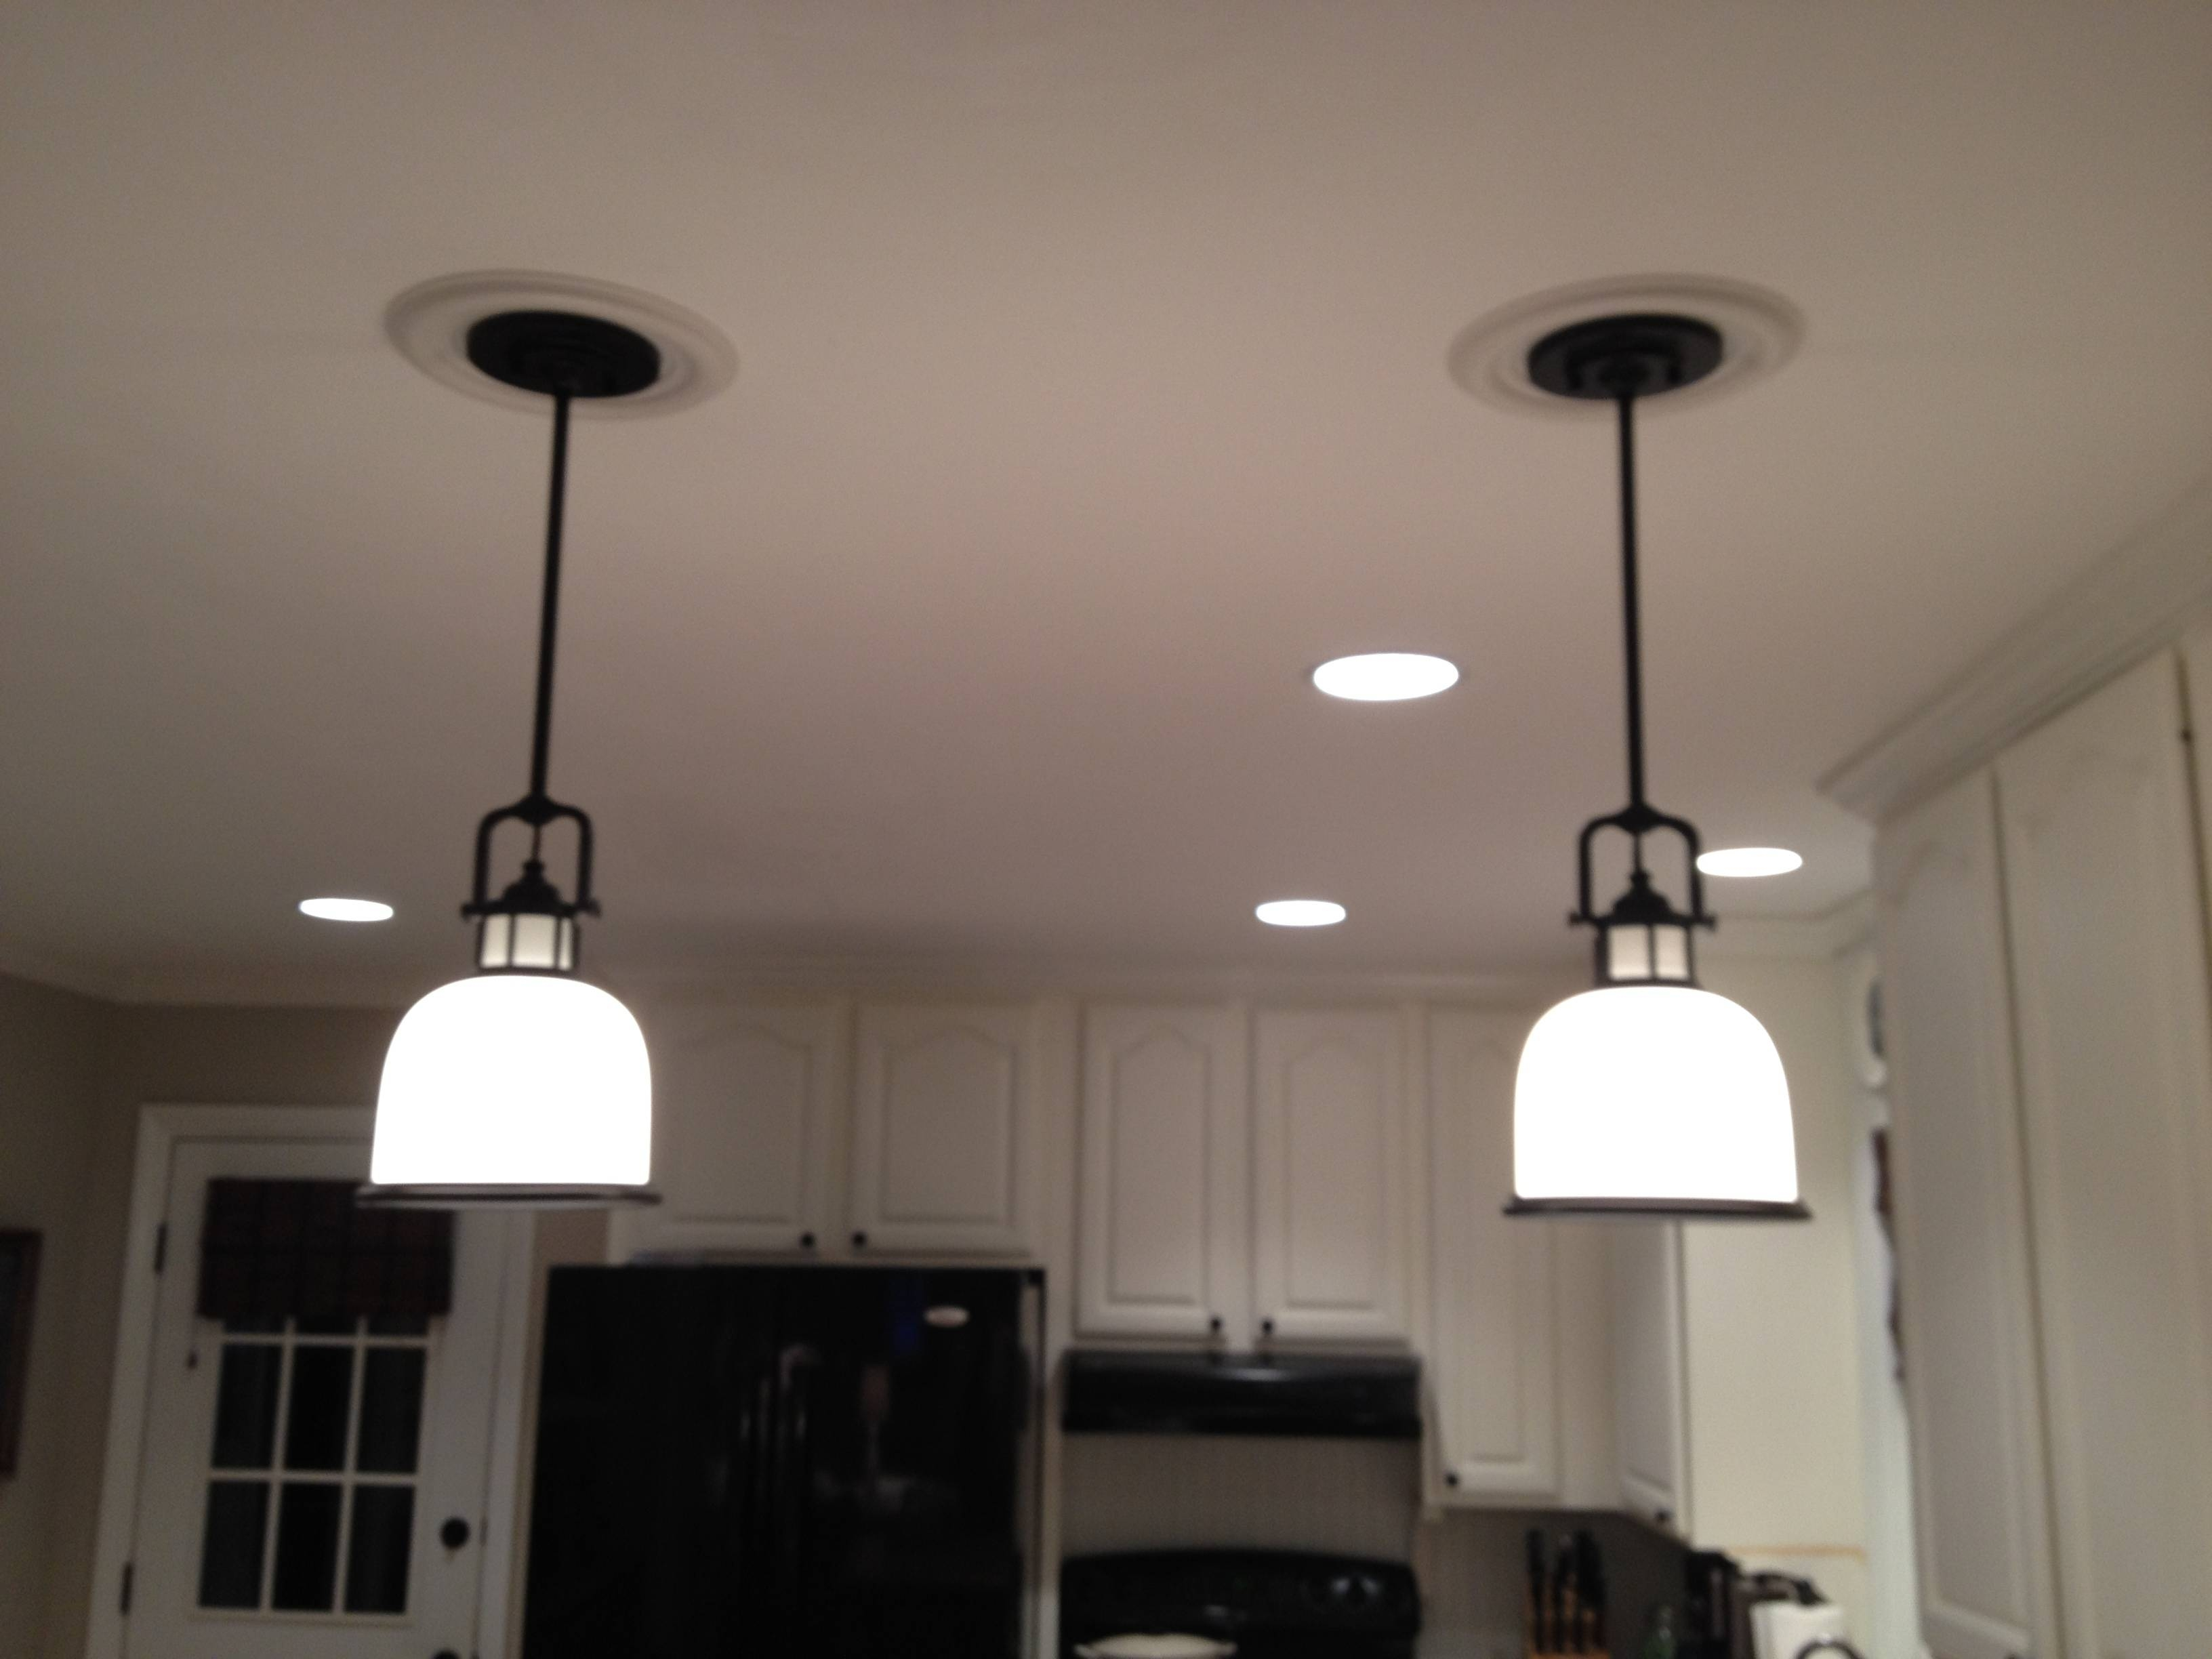 Awesome Recessed Lighting To Pendant 71 In Pendant Light Cage With in Recessed Lights to Pendant Lights (Image 1 of 15)